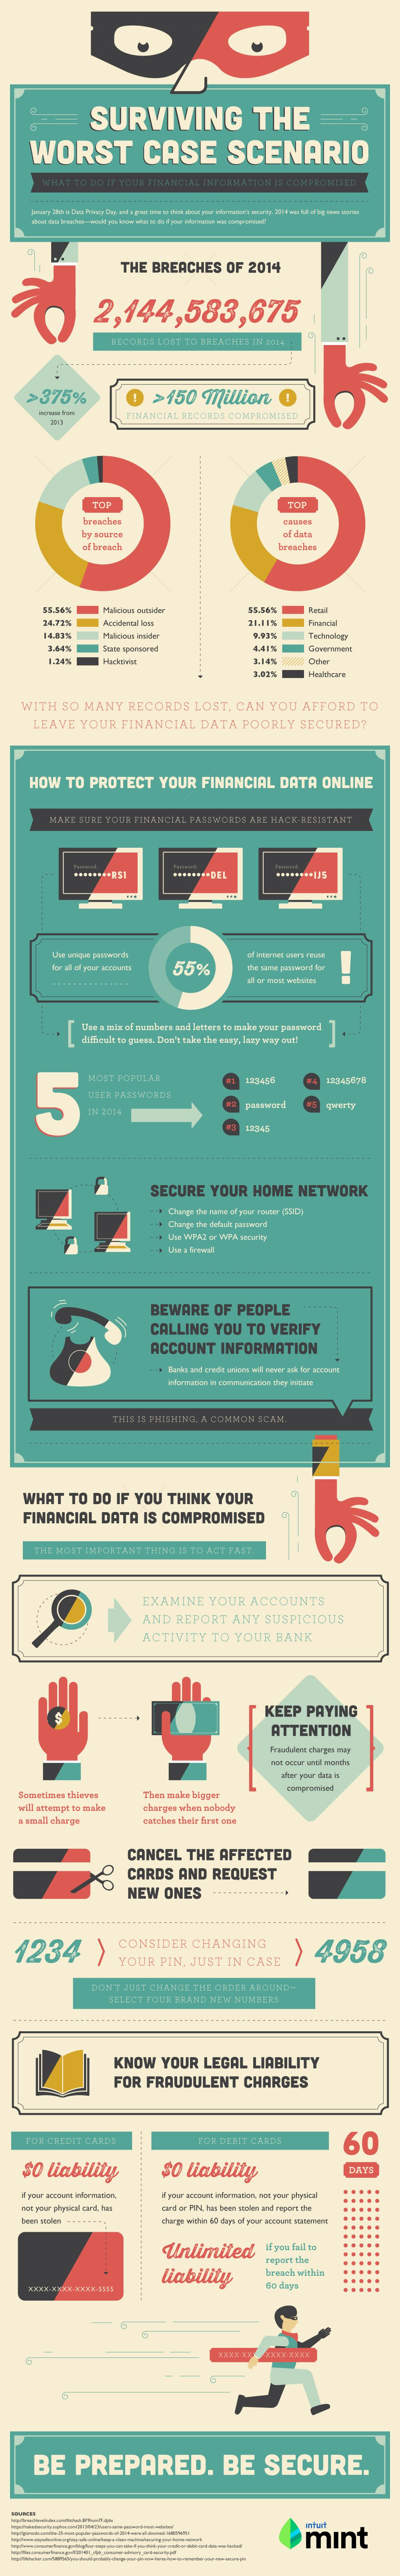 What to Do if Your Financial Information is Compromised #infographic